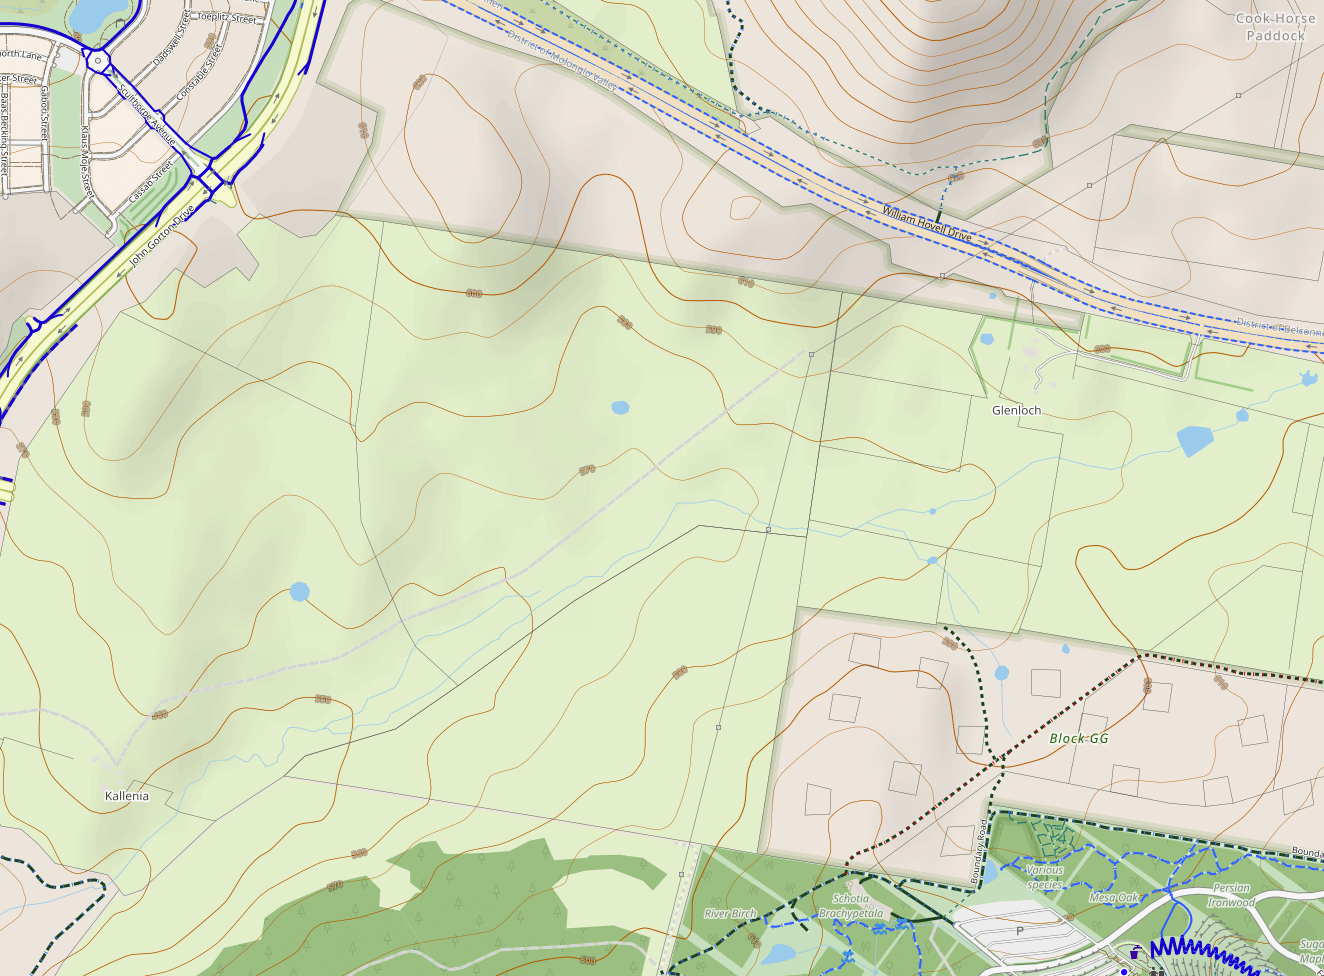 Topographic map of Molonglo 3 East. Map: Cyclosm Data: OpenStreetMap and contribtors.